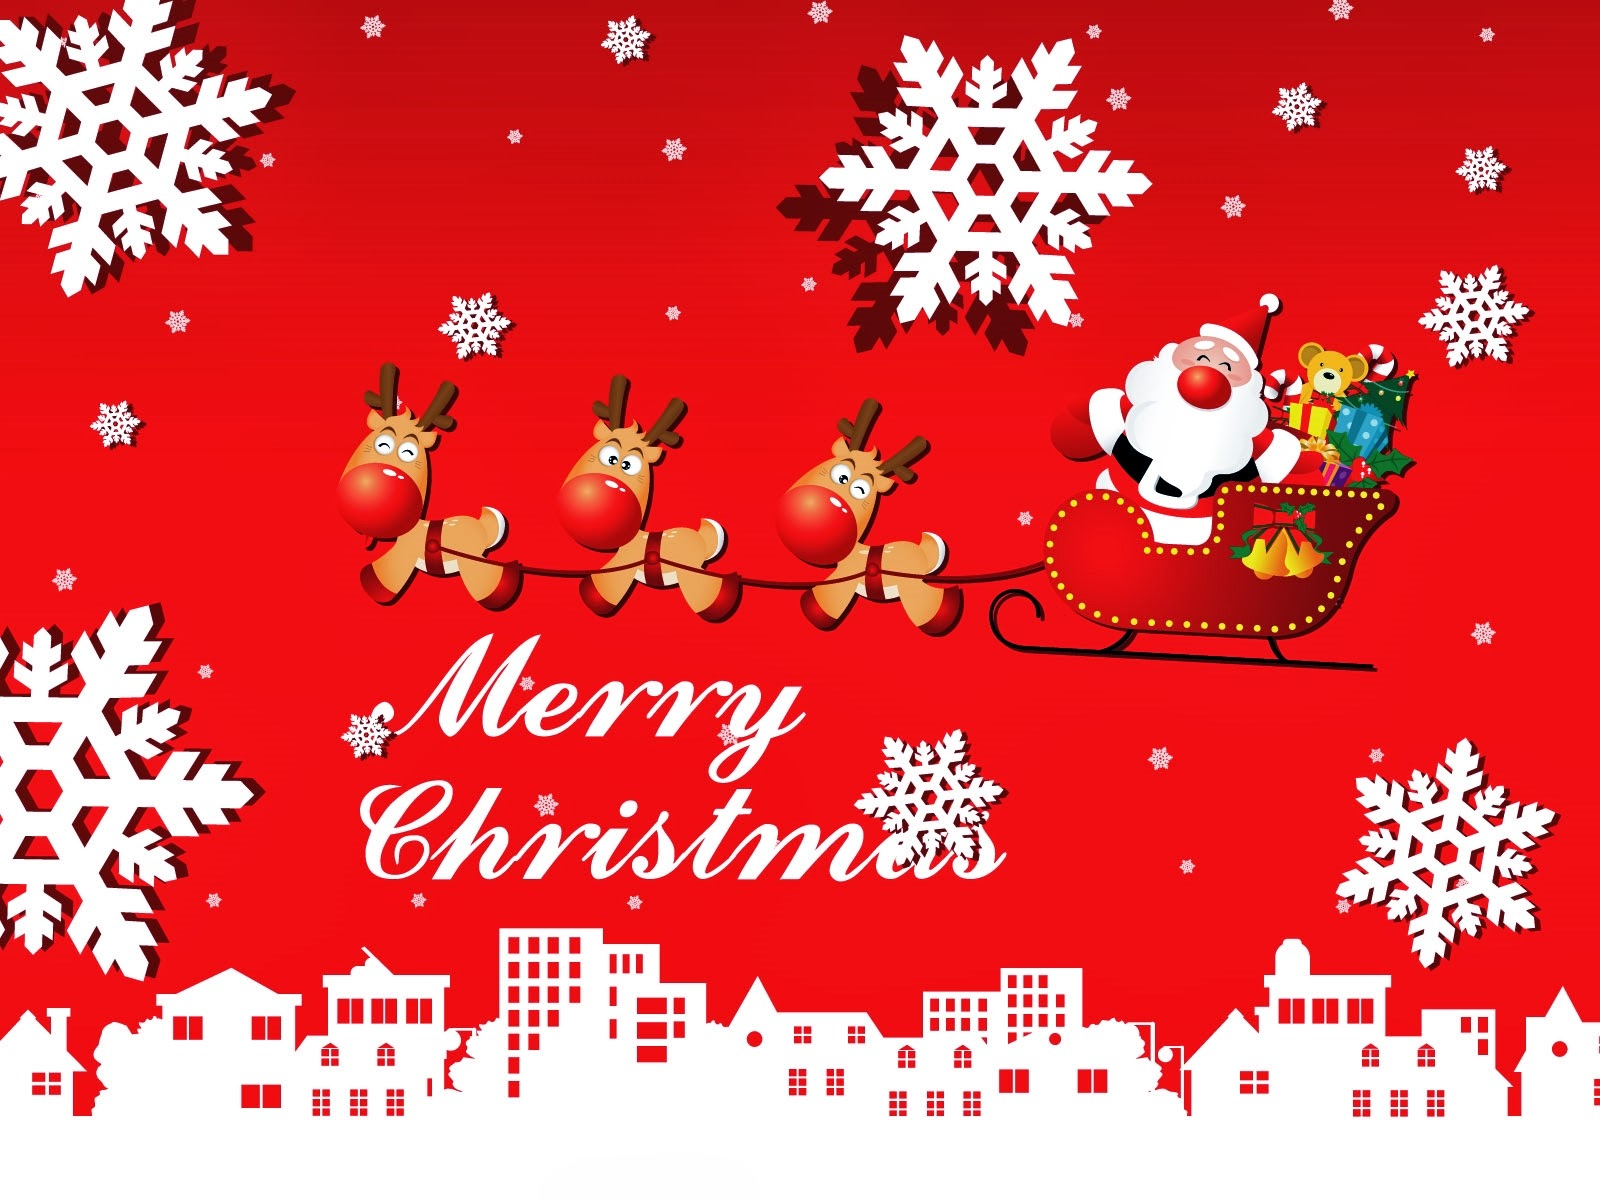 funnylovesadbirthday sms merry christmas wallpaper 2013